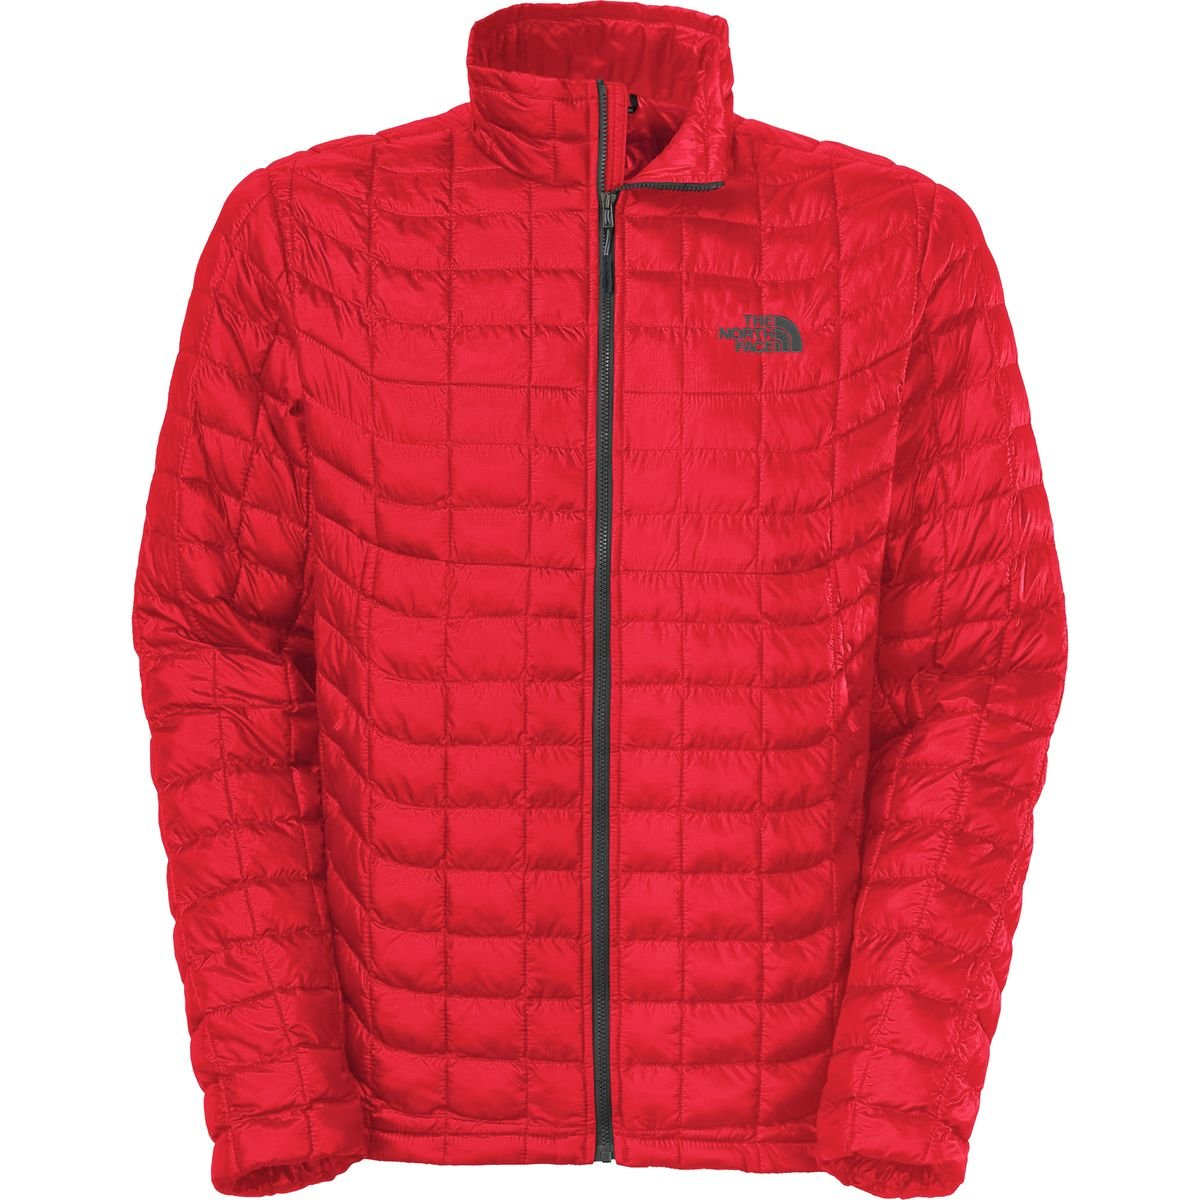 The North Face Men's Thermoball Full Zip Jacket The North Face Apparel Mens C762